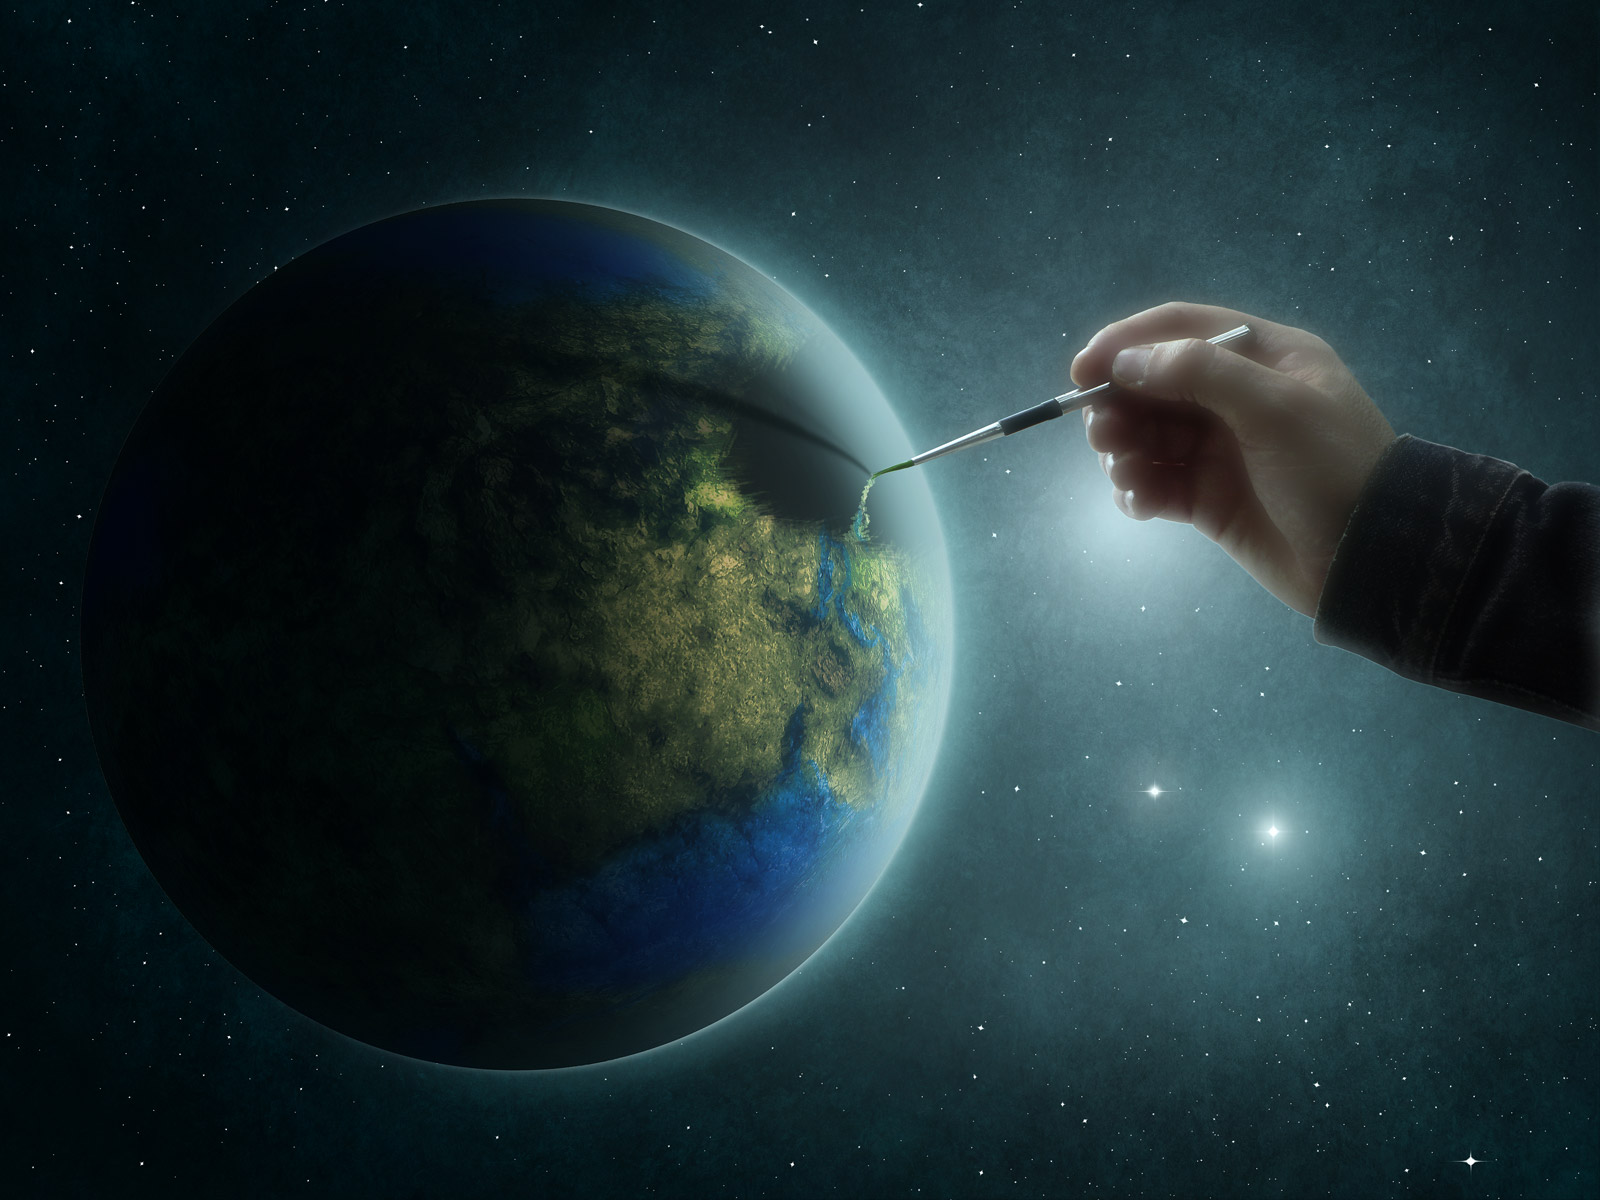 earth-painting-creative-backgrounds